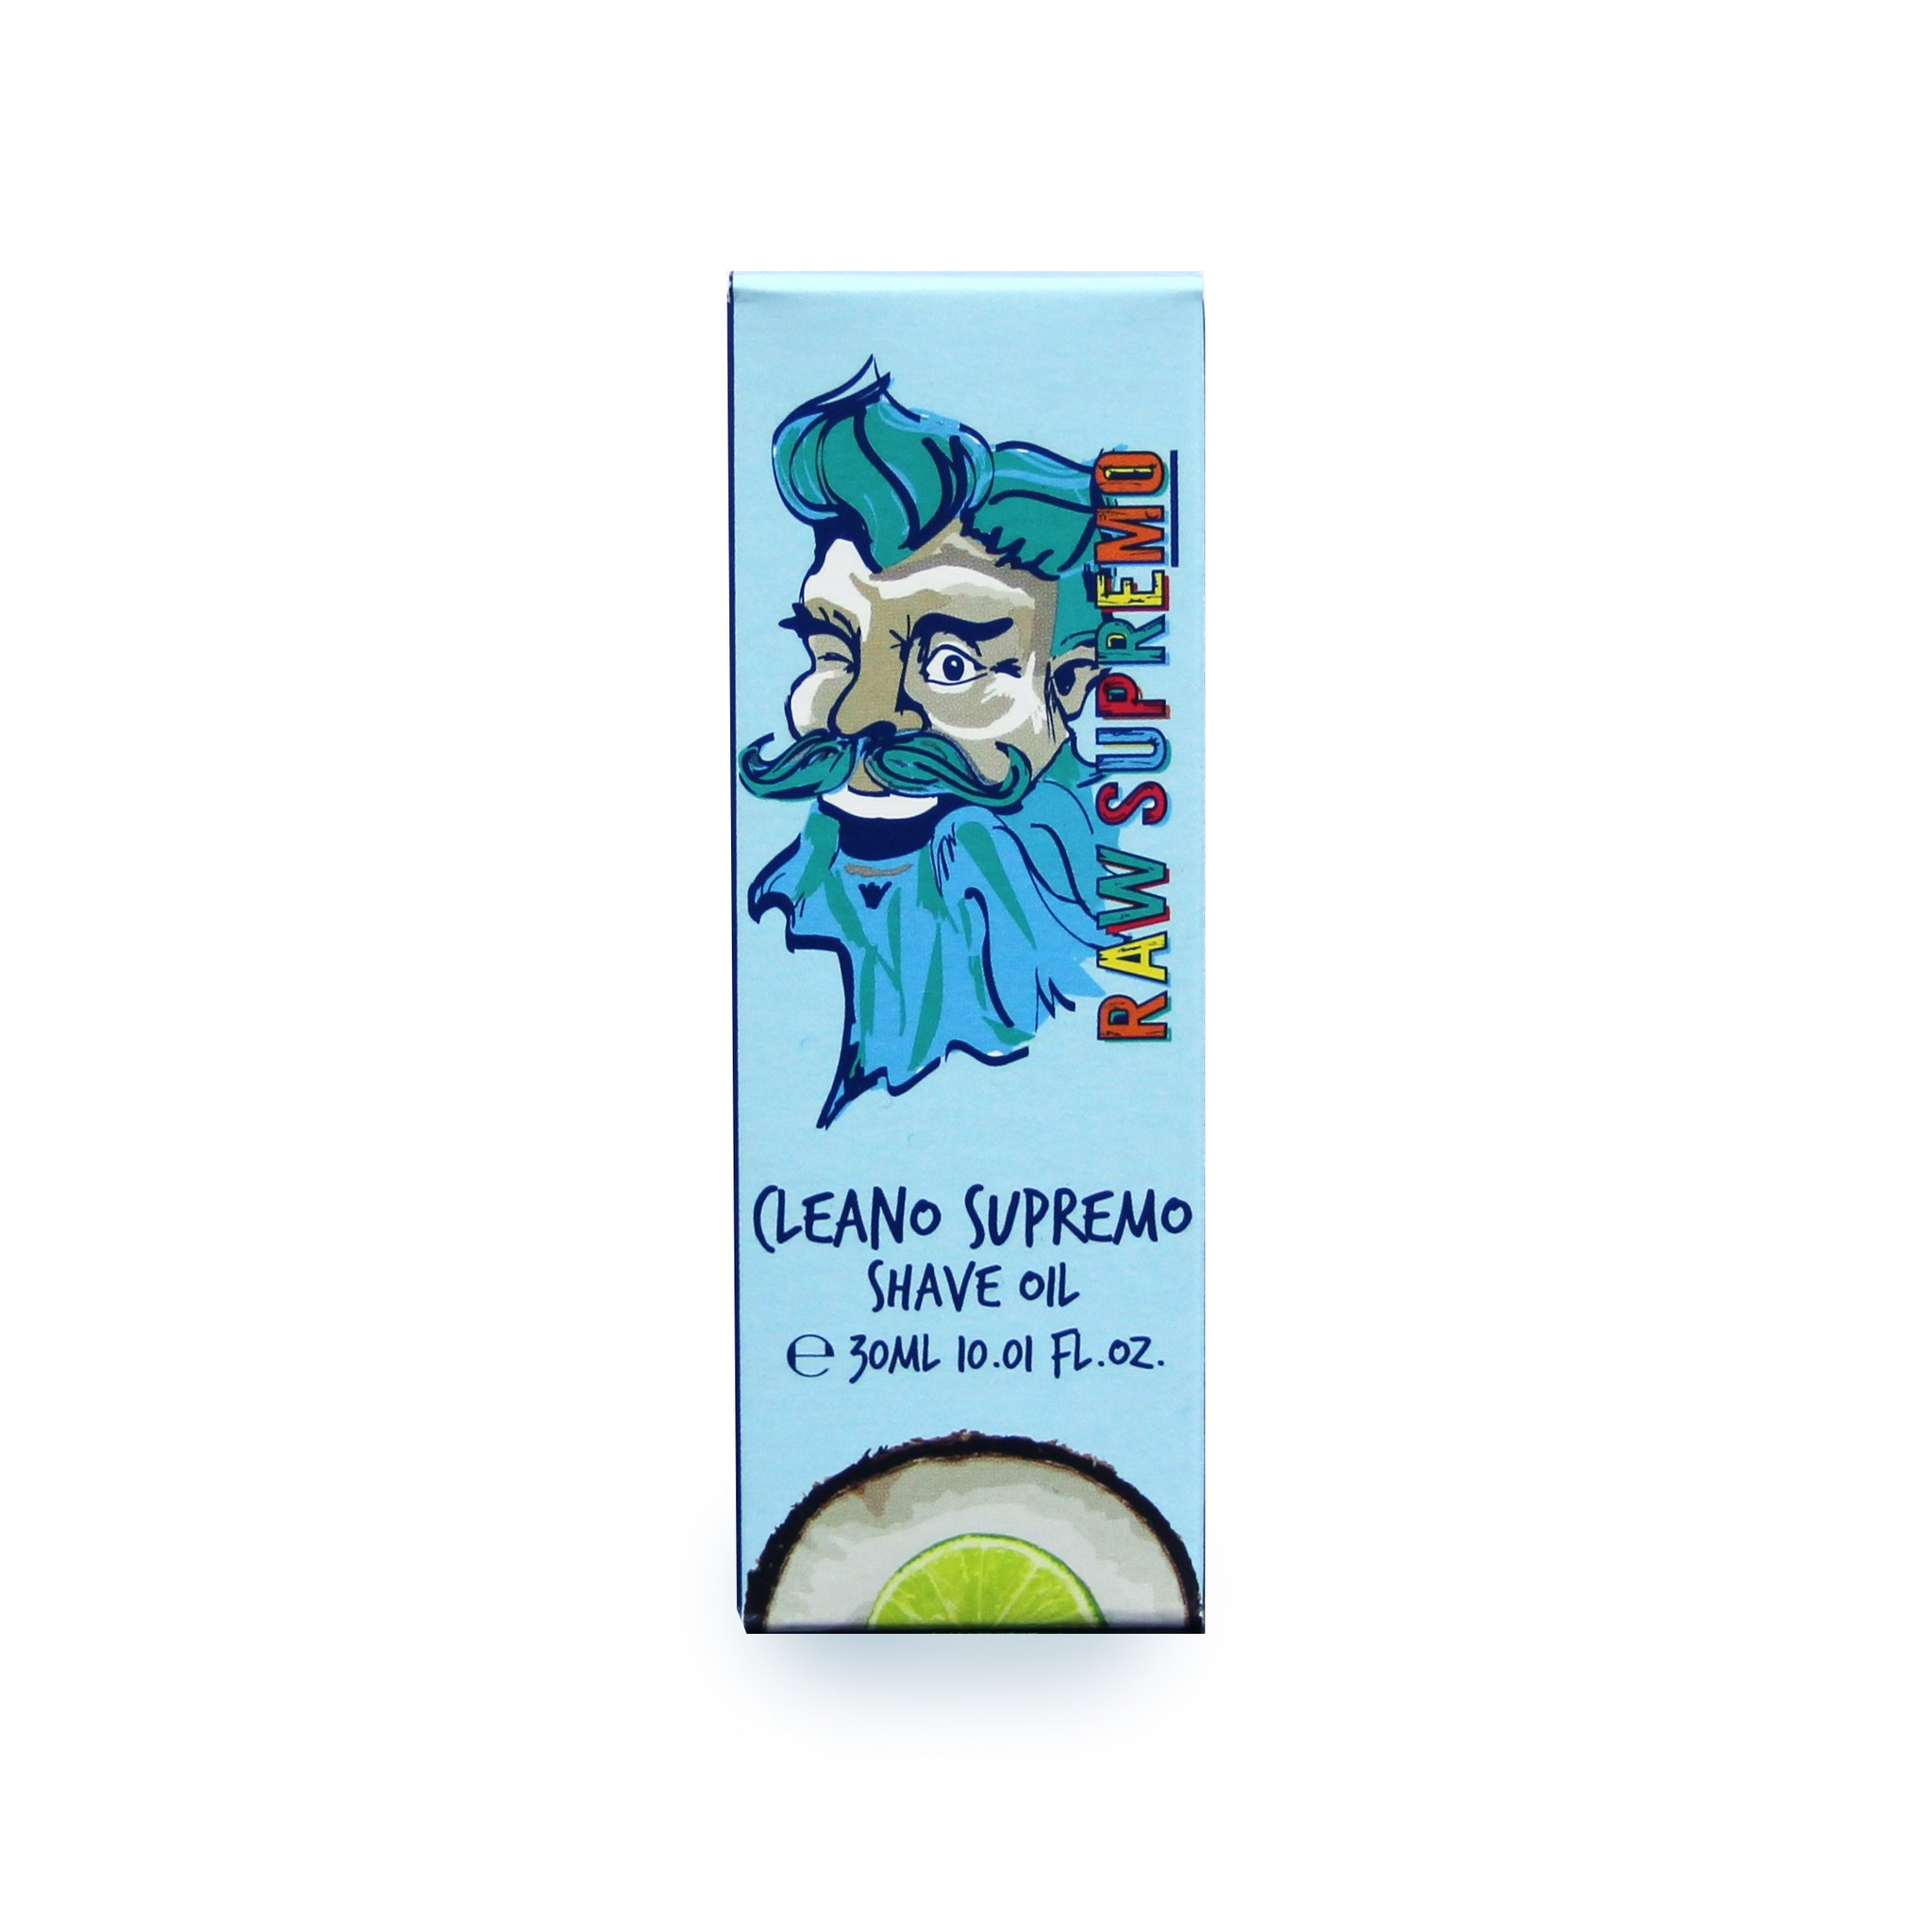 Raw Supremo - Cleano Supremo Shaving Oil - Olej na holení, 30ml